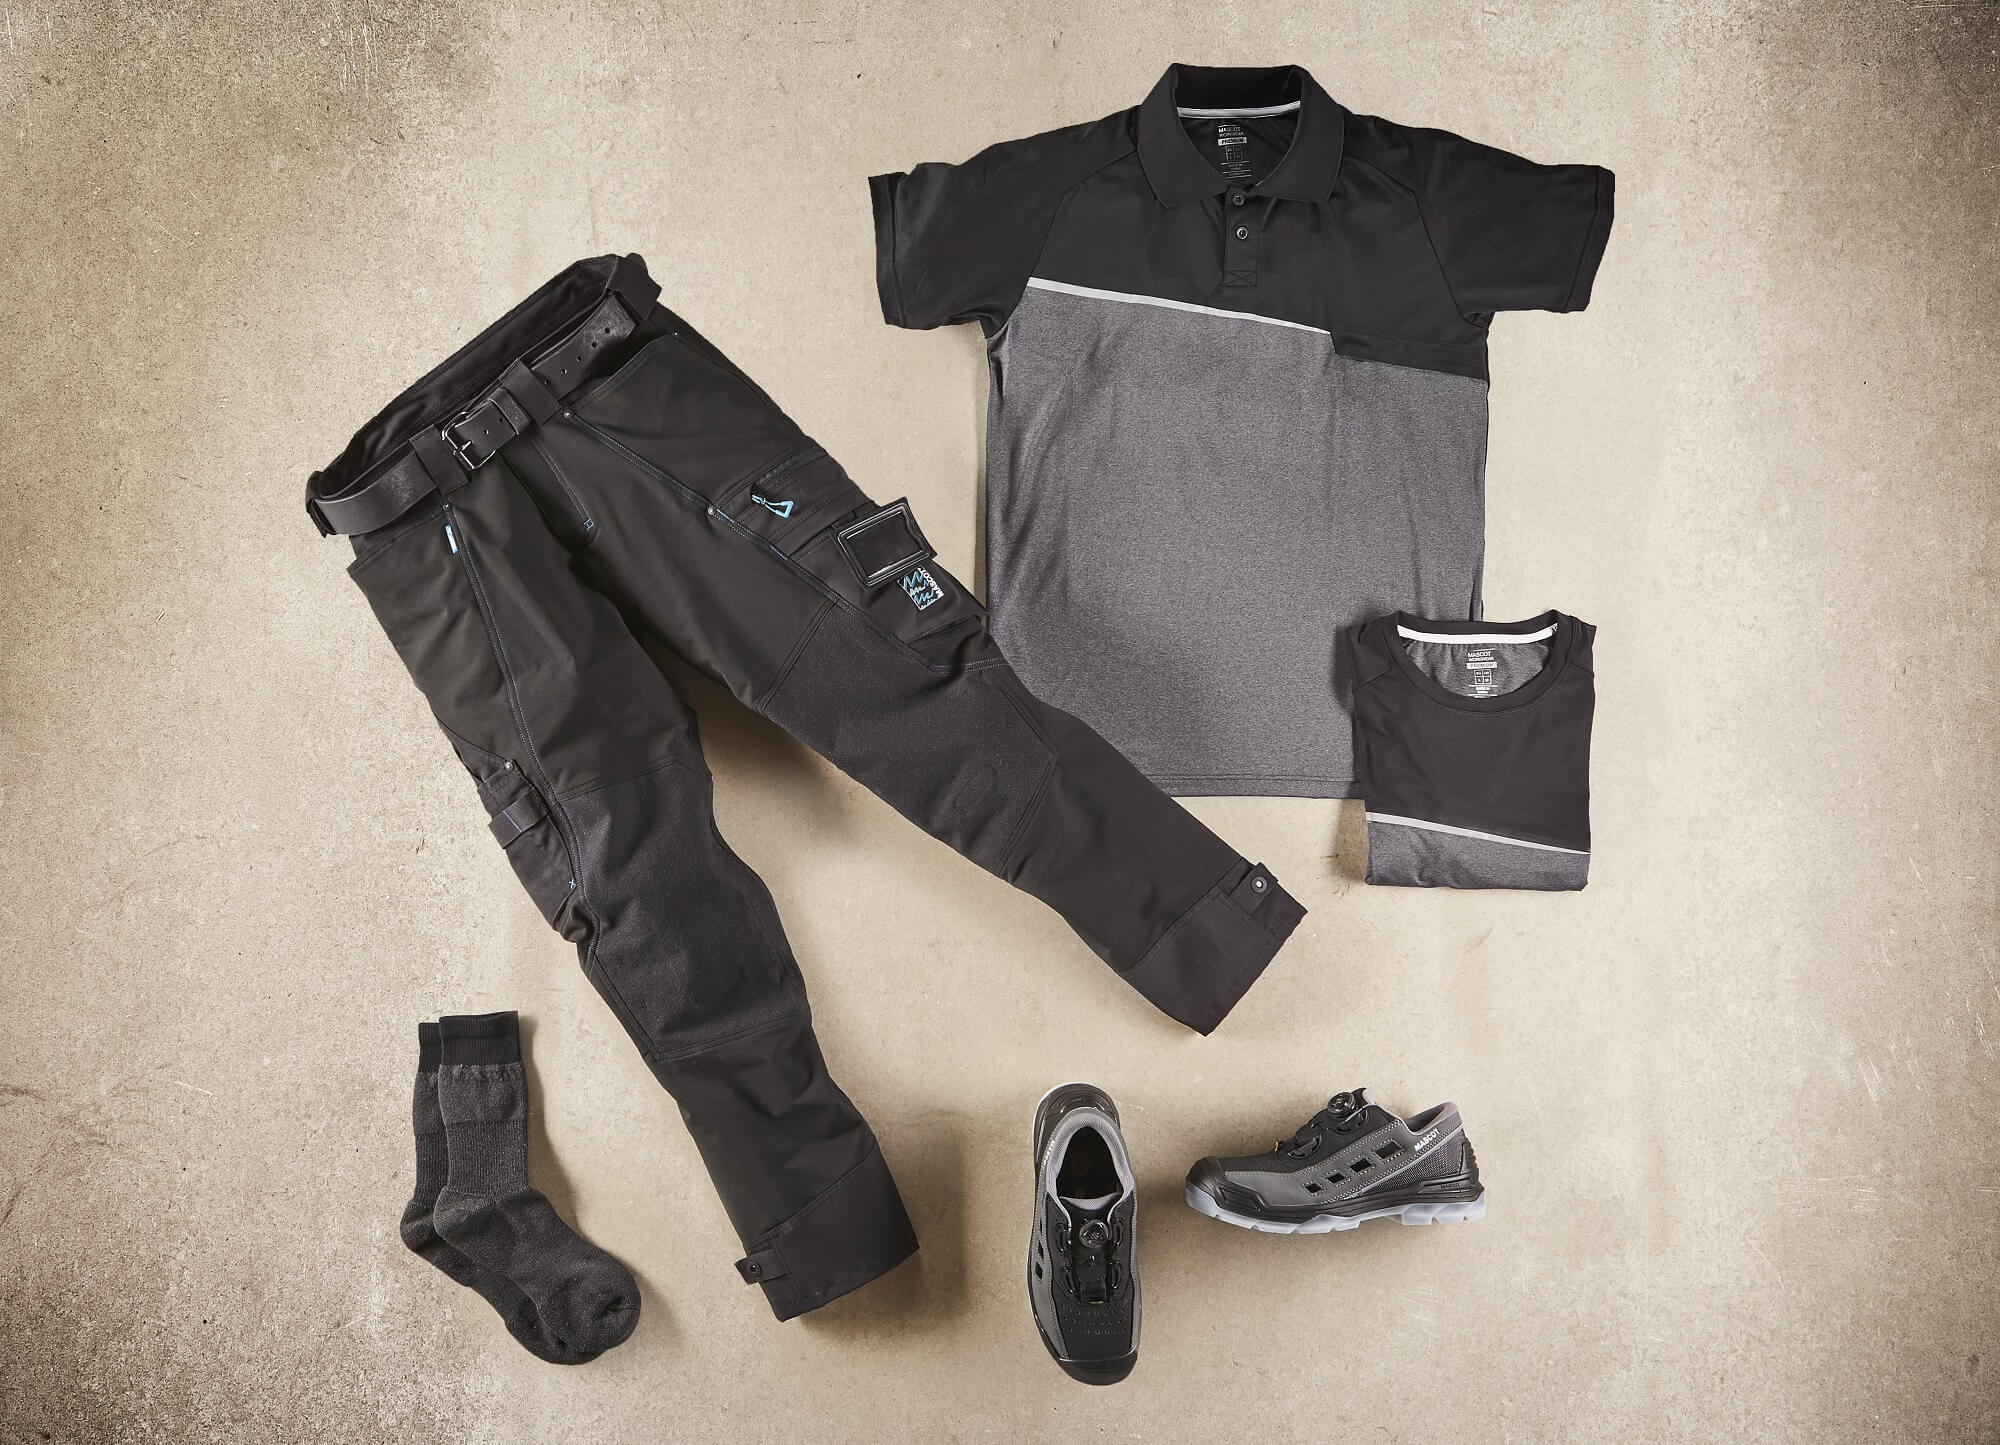 Black - Work Polo Shirt, Pants, Safety Sandal & Socks - Collage